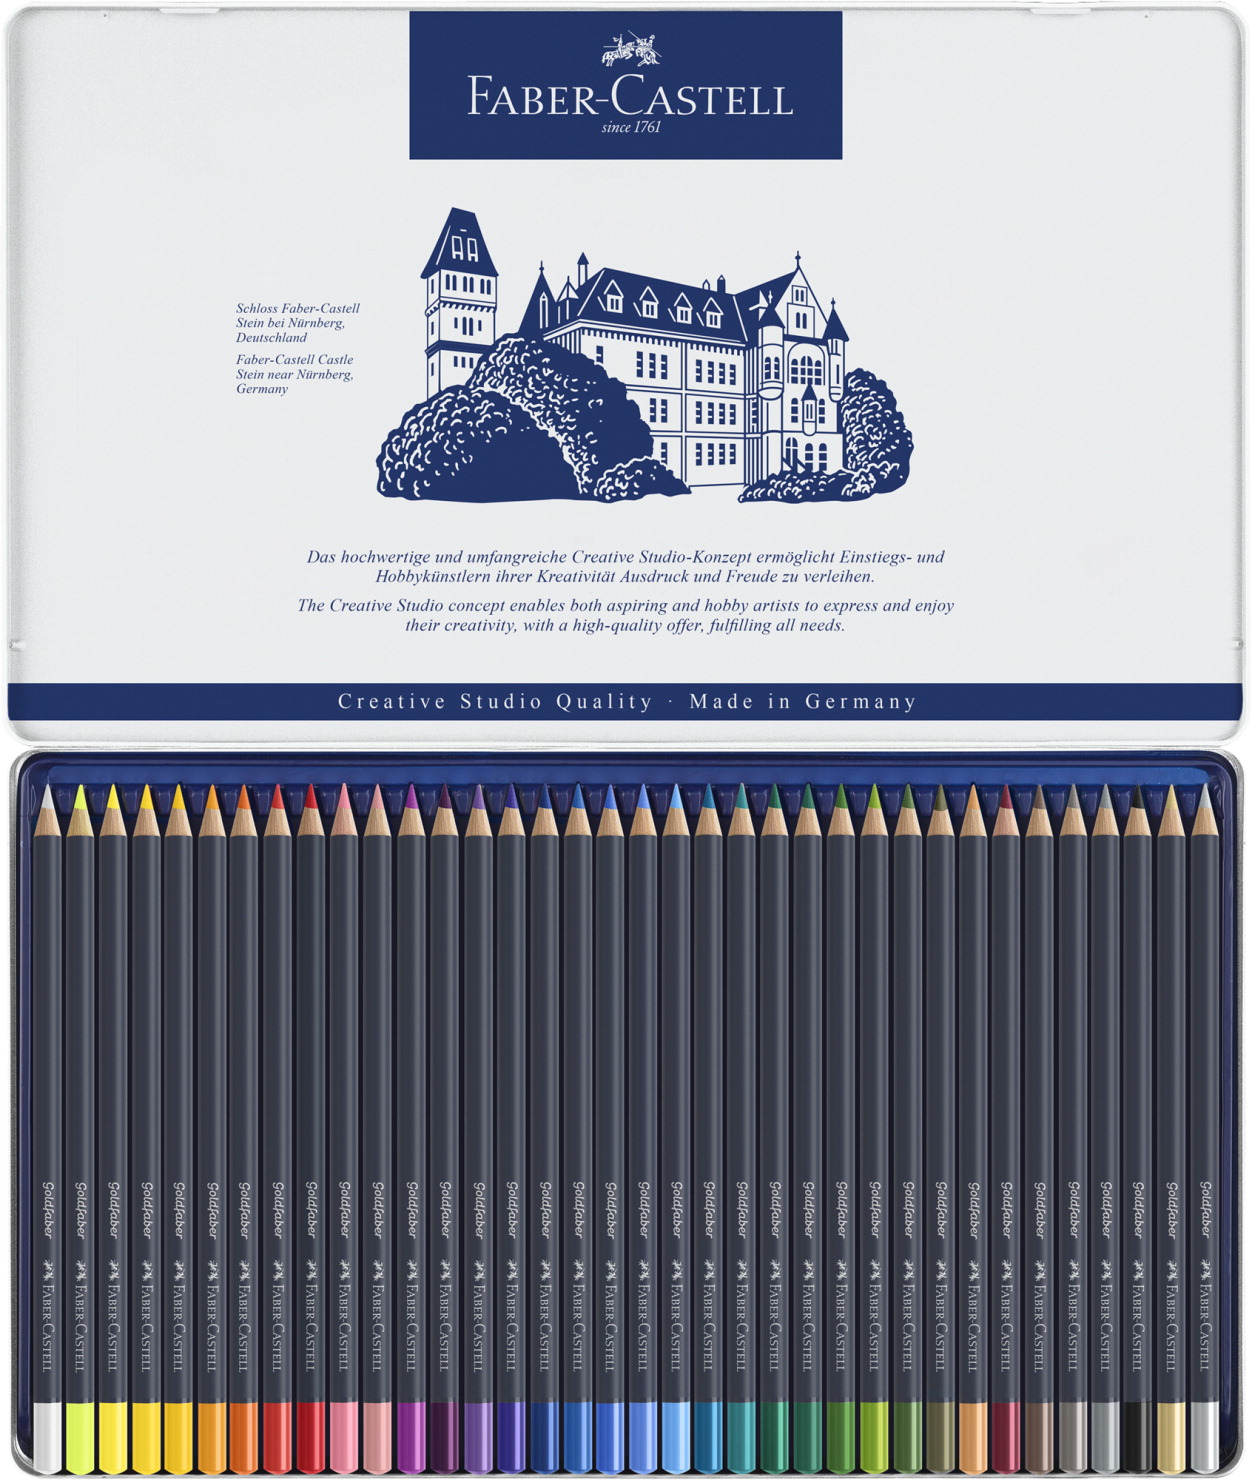 Faber-Castell Goldfaber Colored Pencils, Set of 36